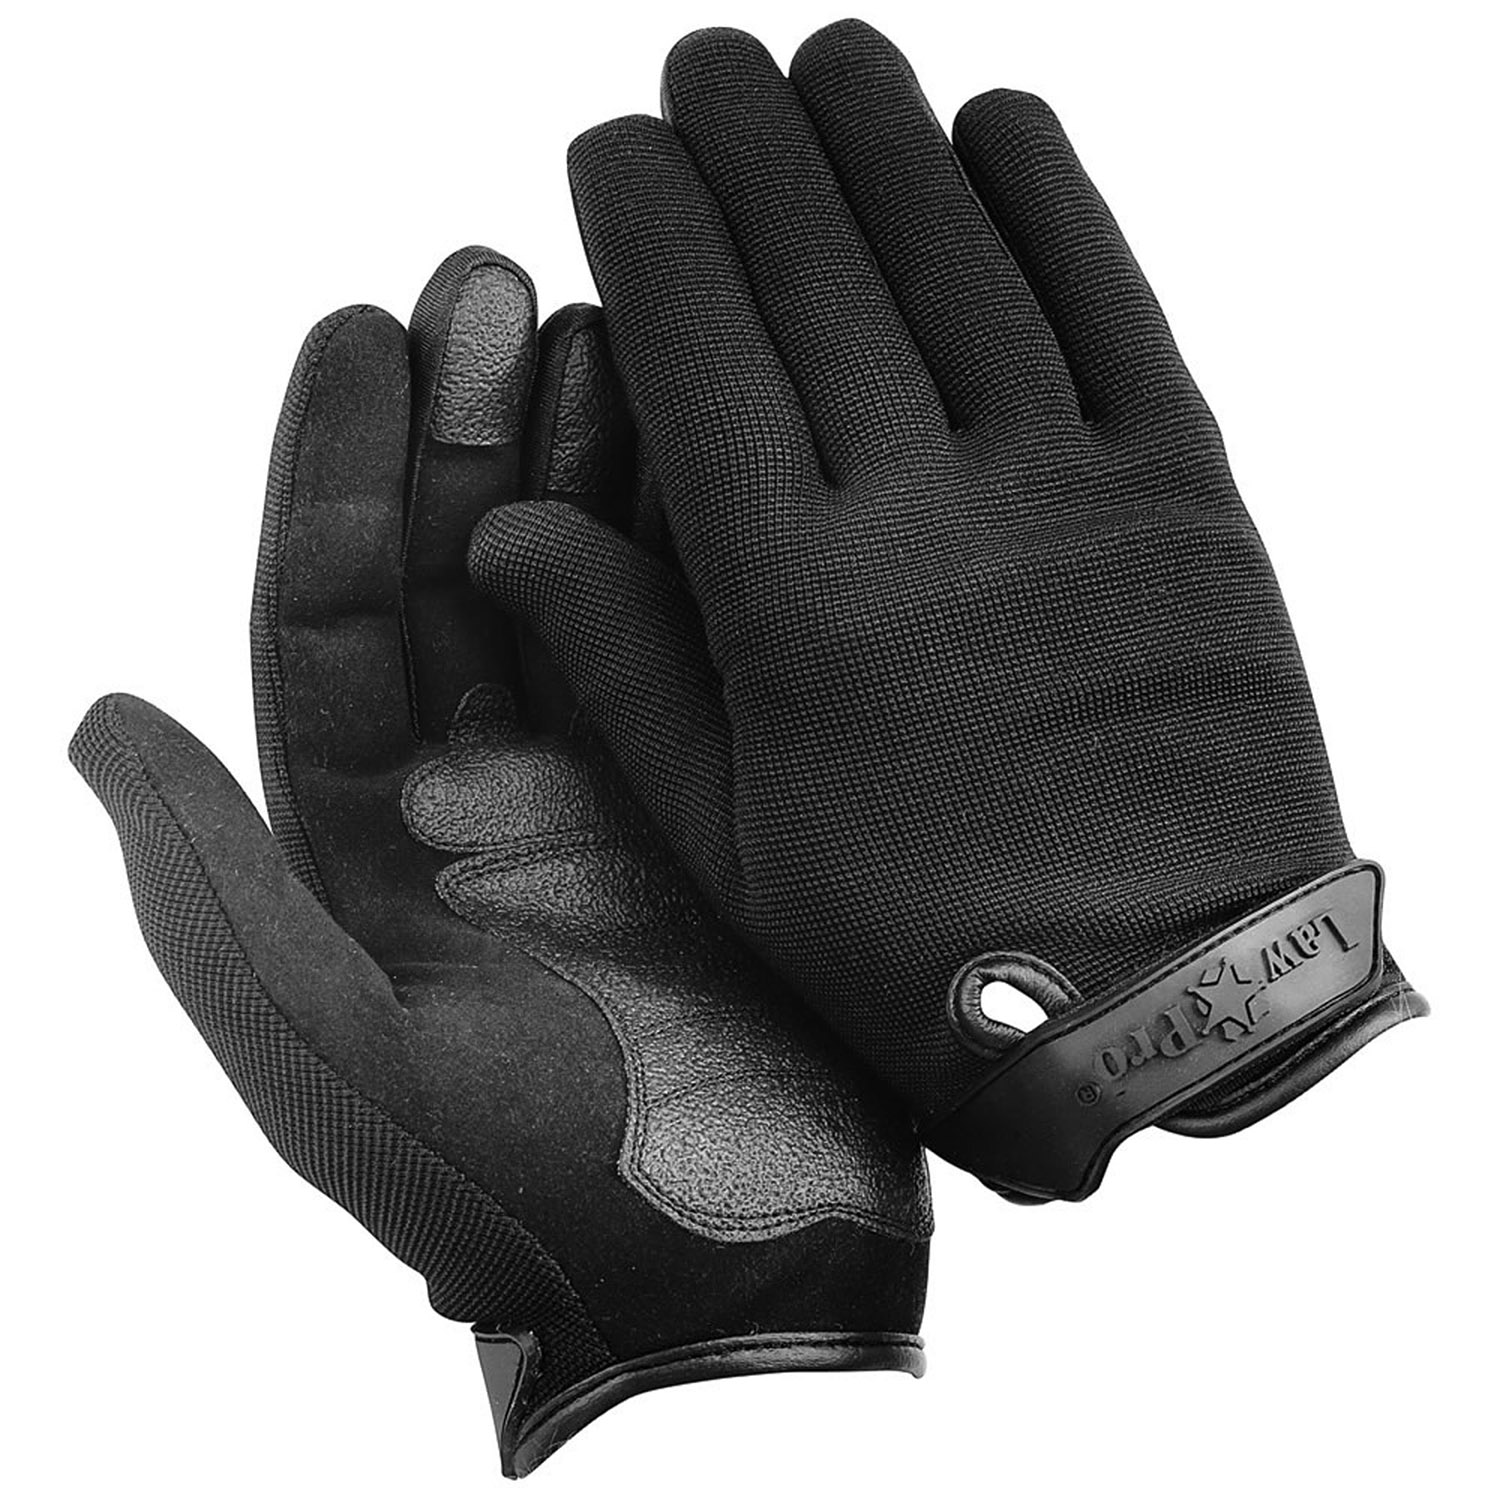 LawPro Lightweight Multipurpose Duty Gloves